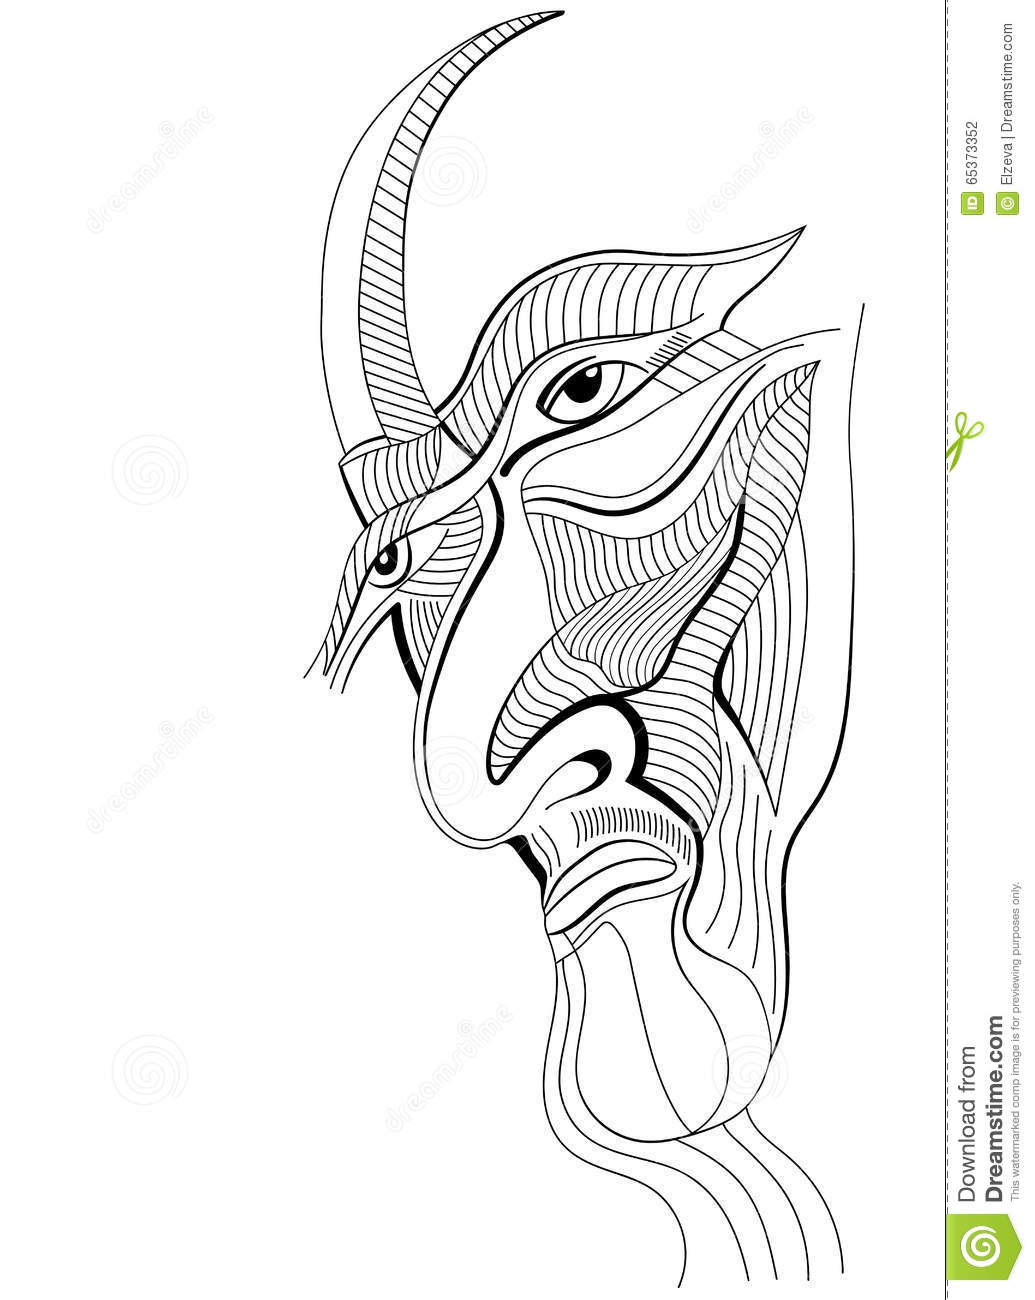 54c7a4cc9e5a3 Face a villain in abstract style. Hand drawn graphic design, can use for  posters cards, stickers, illustrations, as decorative element.